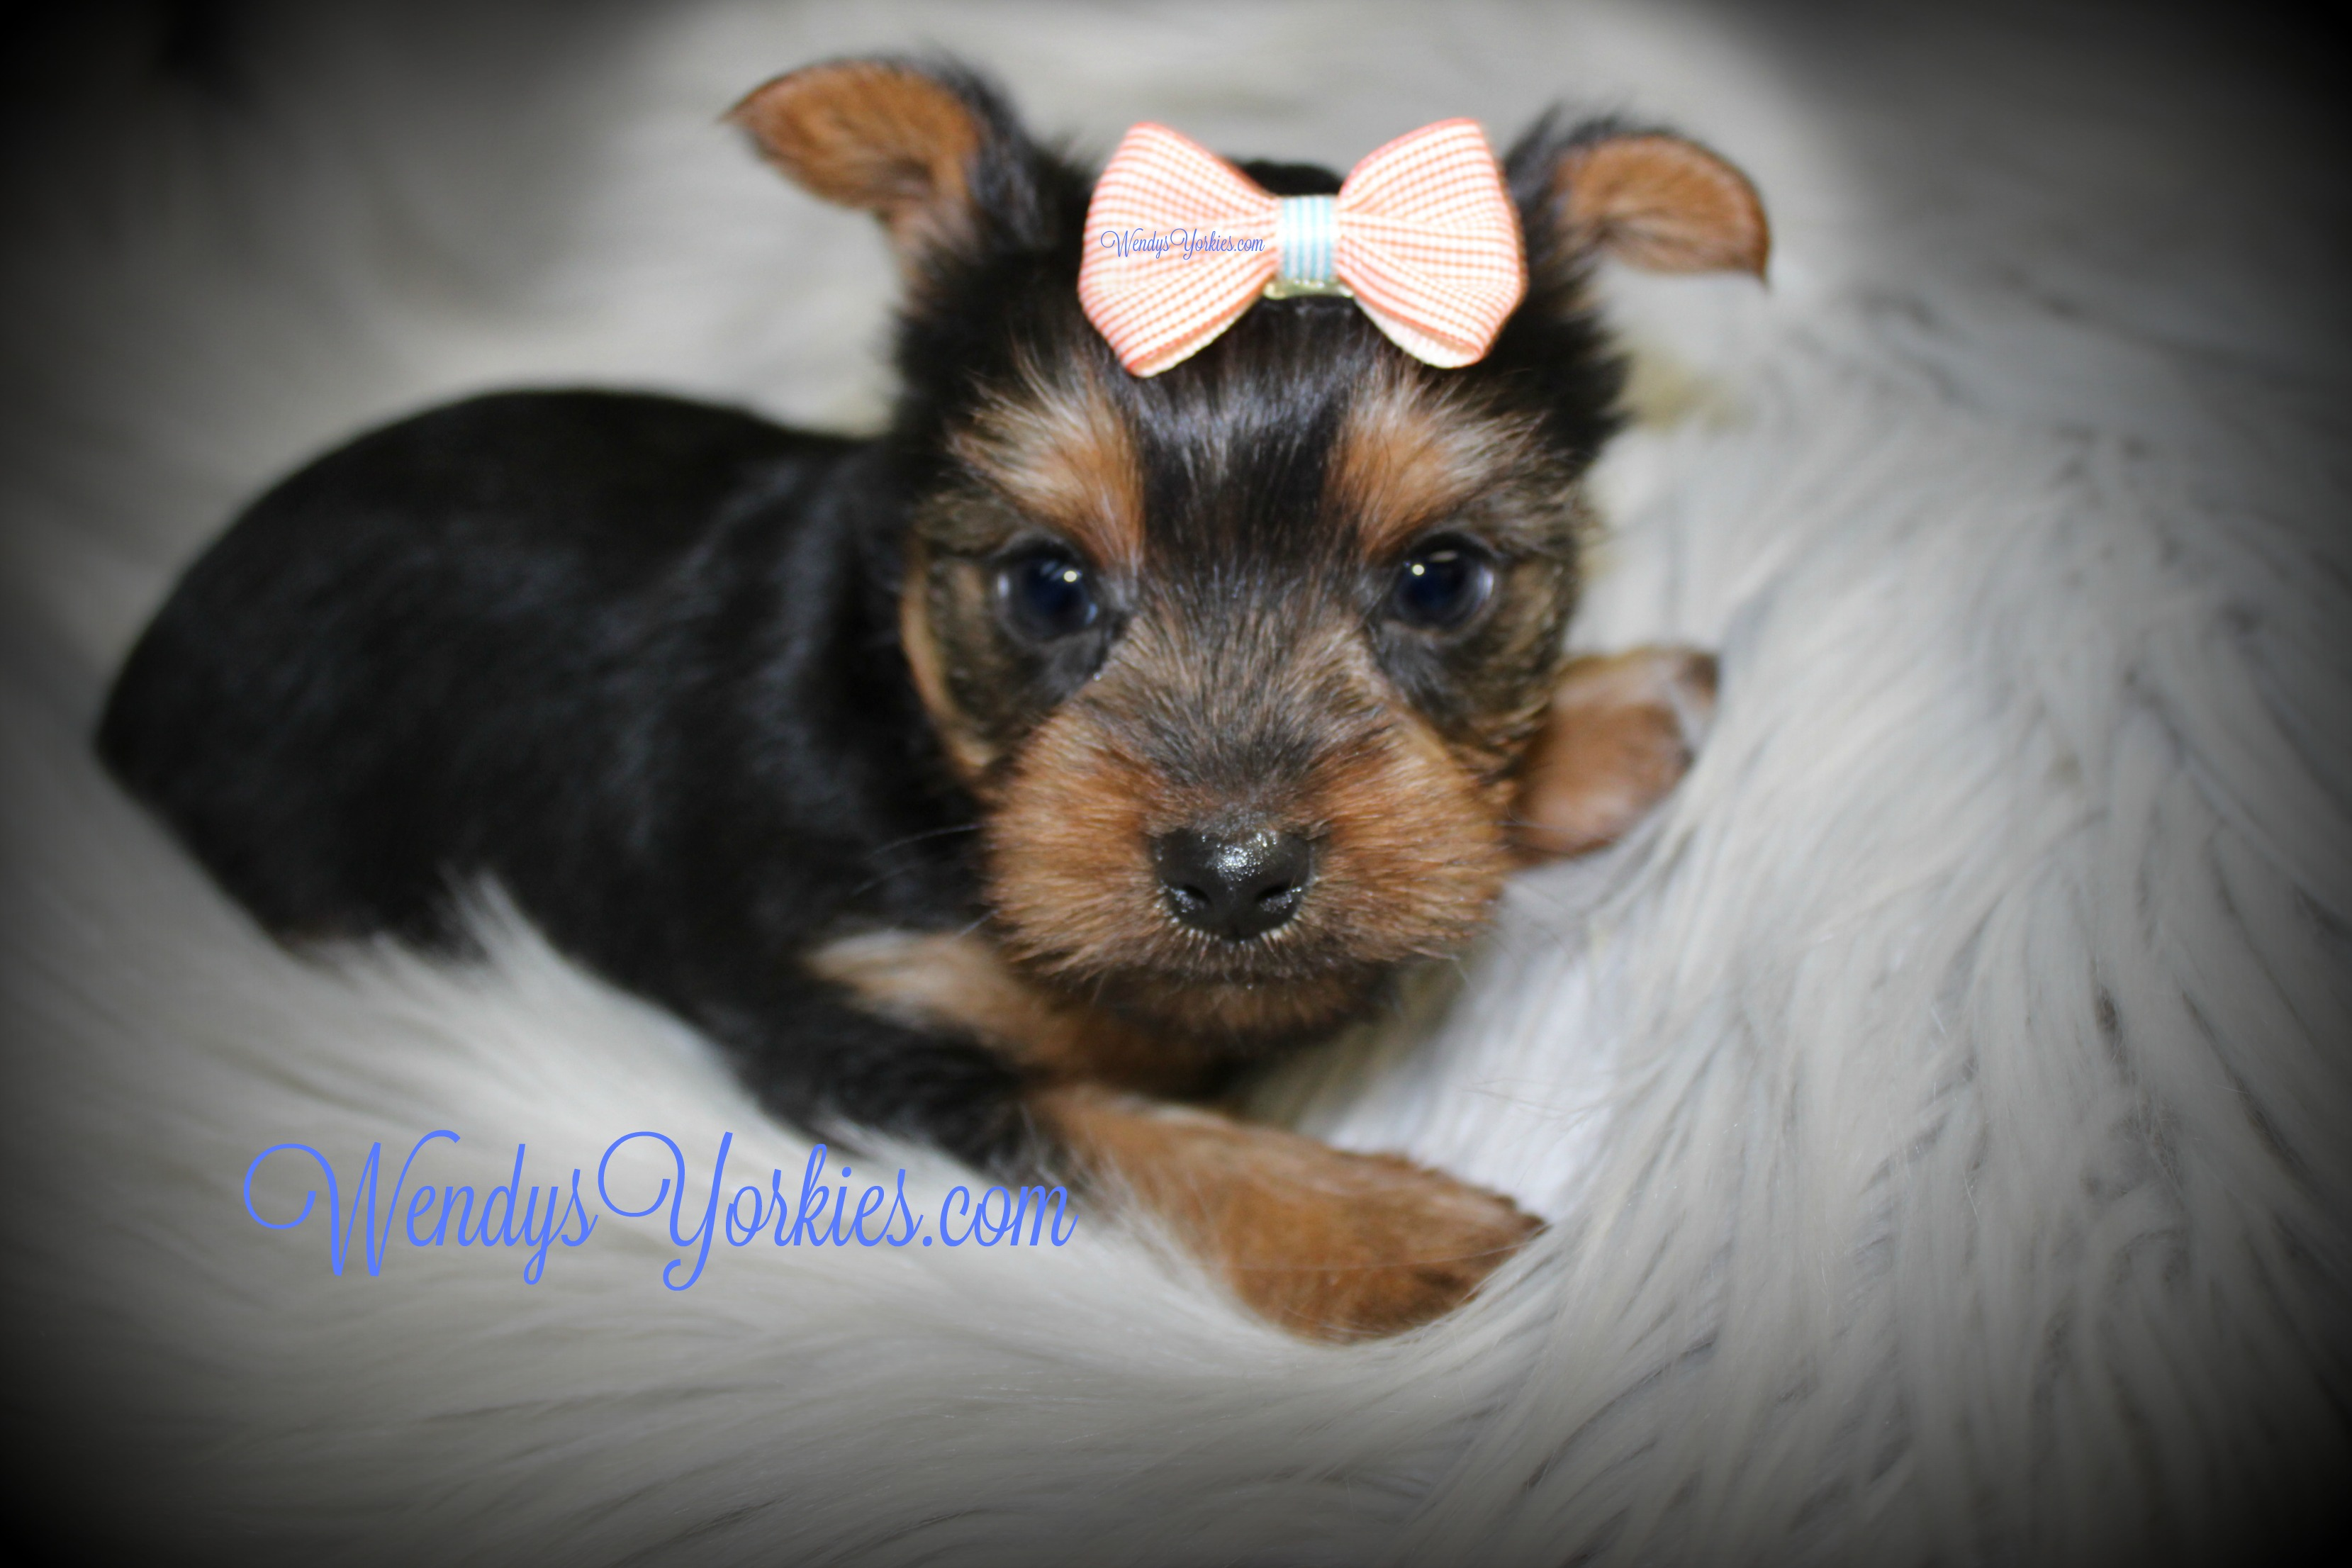 Yorkie puppies for sale, WendysYorkies.com, TG m1